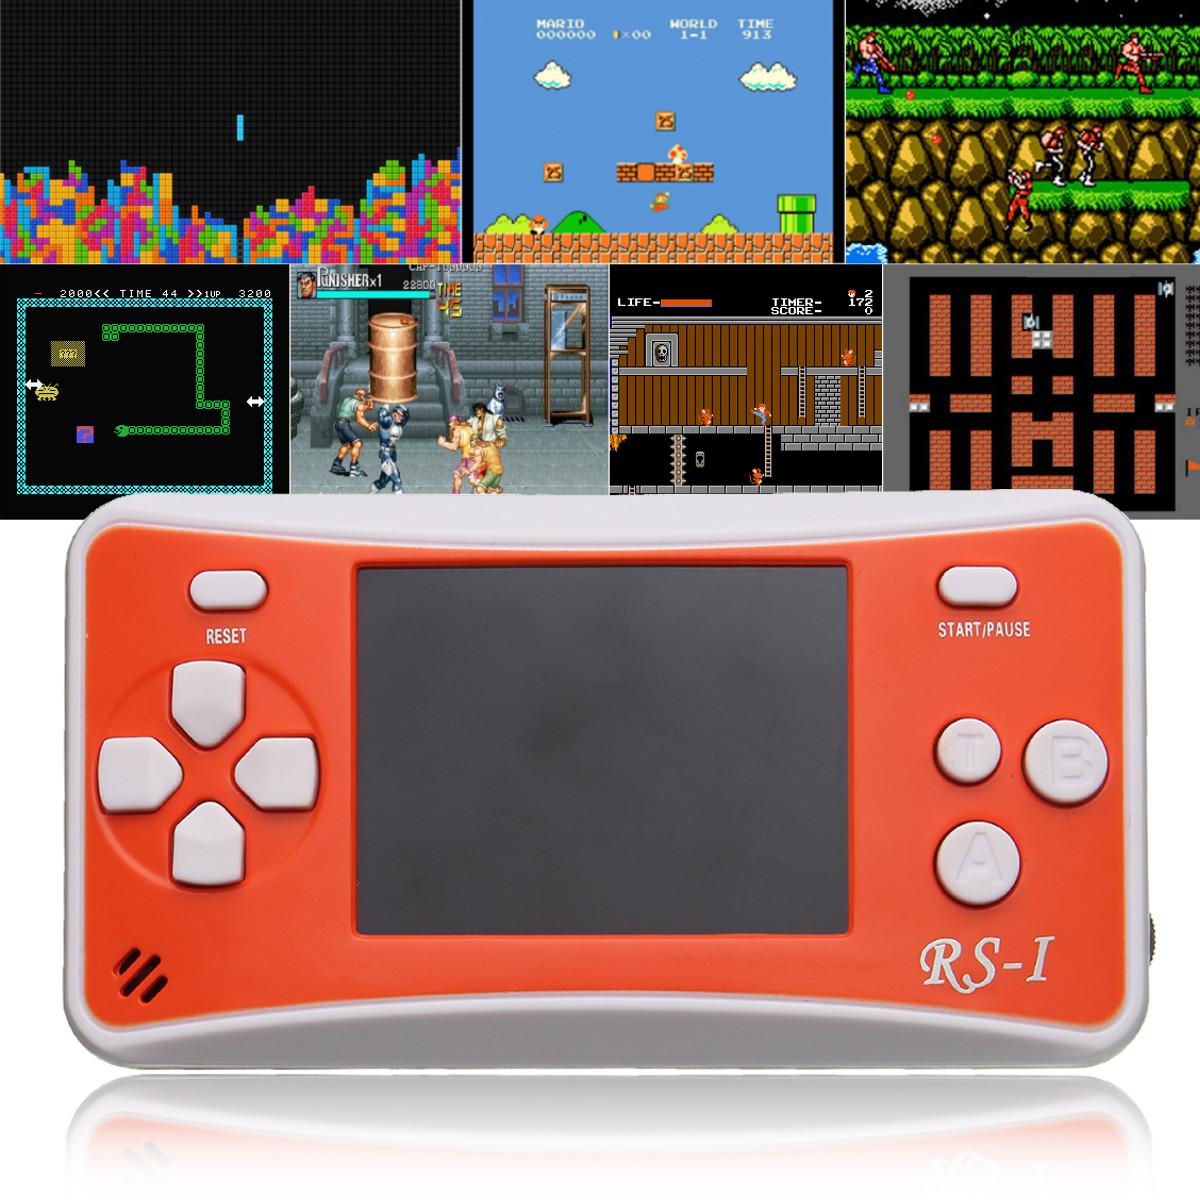 ShirLin Portable Mini Handheld Game Console Portable Video Game Player LCD Enhanced Back BUILT IN 152 GAMES for Kids Gift